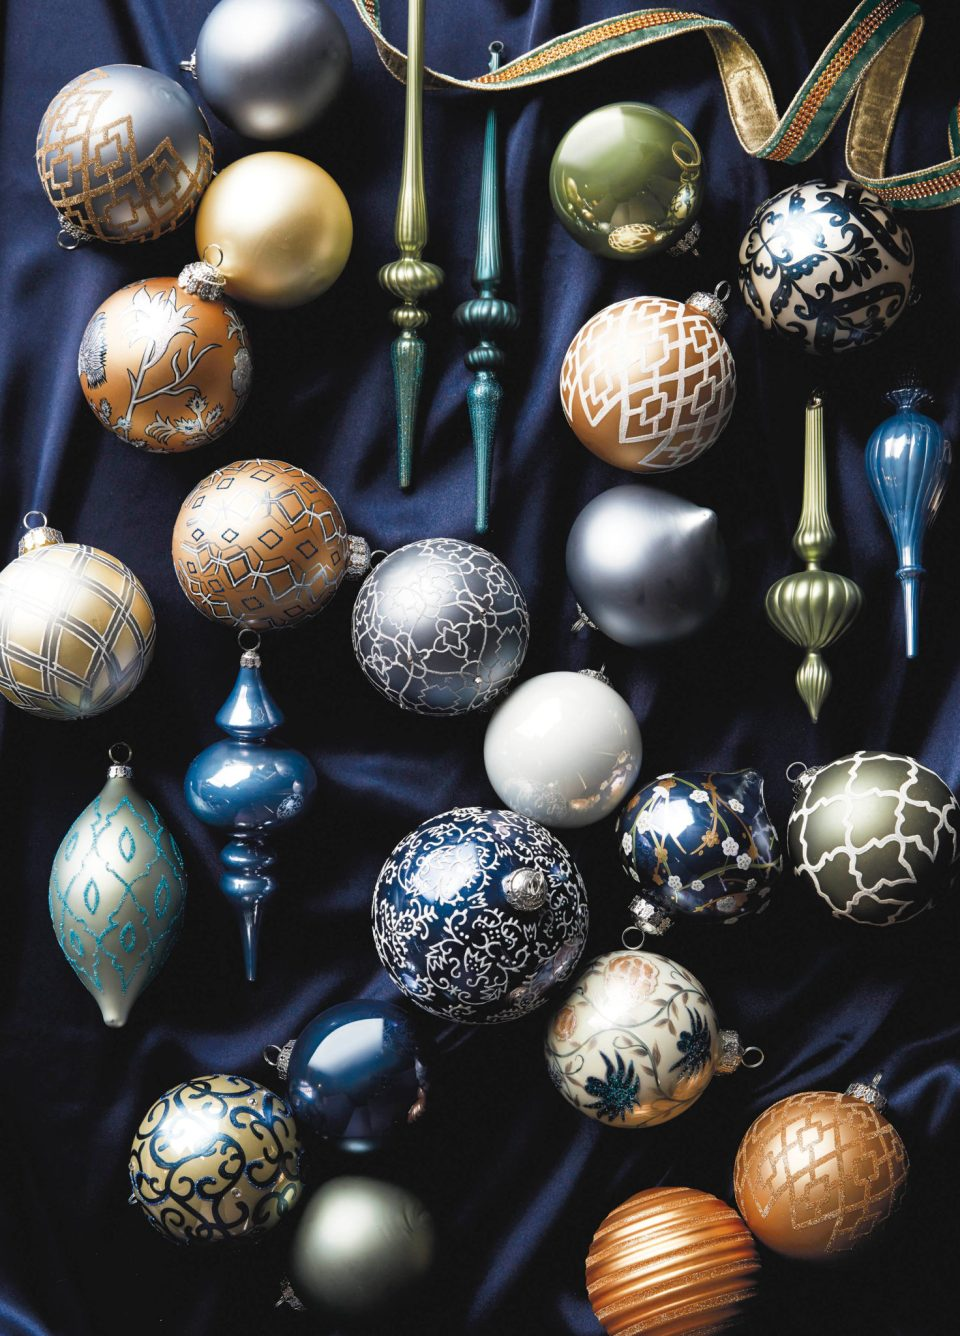 158720_007-960x1336 Holiday Ornaments We Love and How to Store Your Holiday Decor